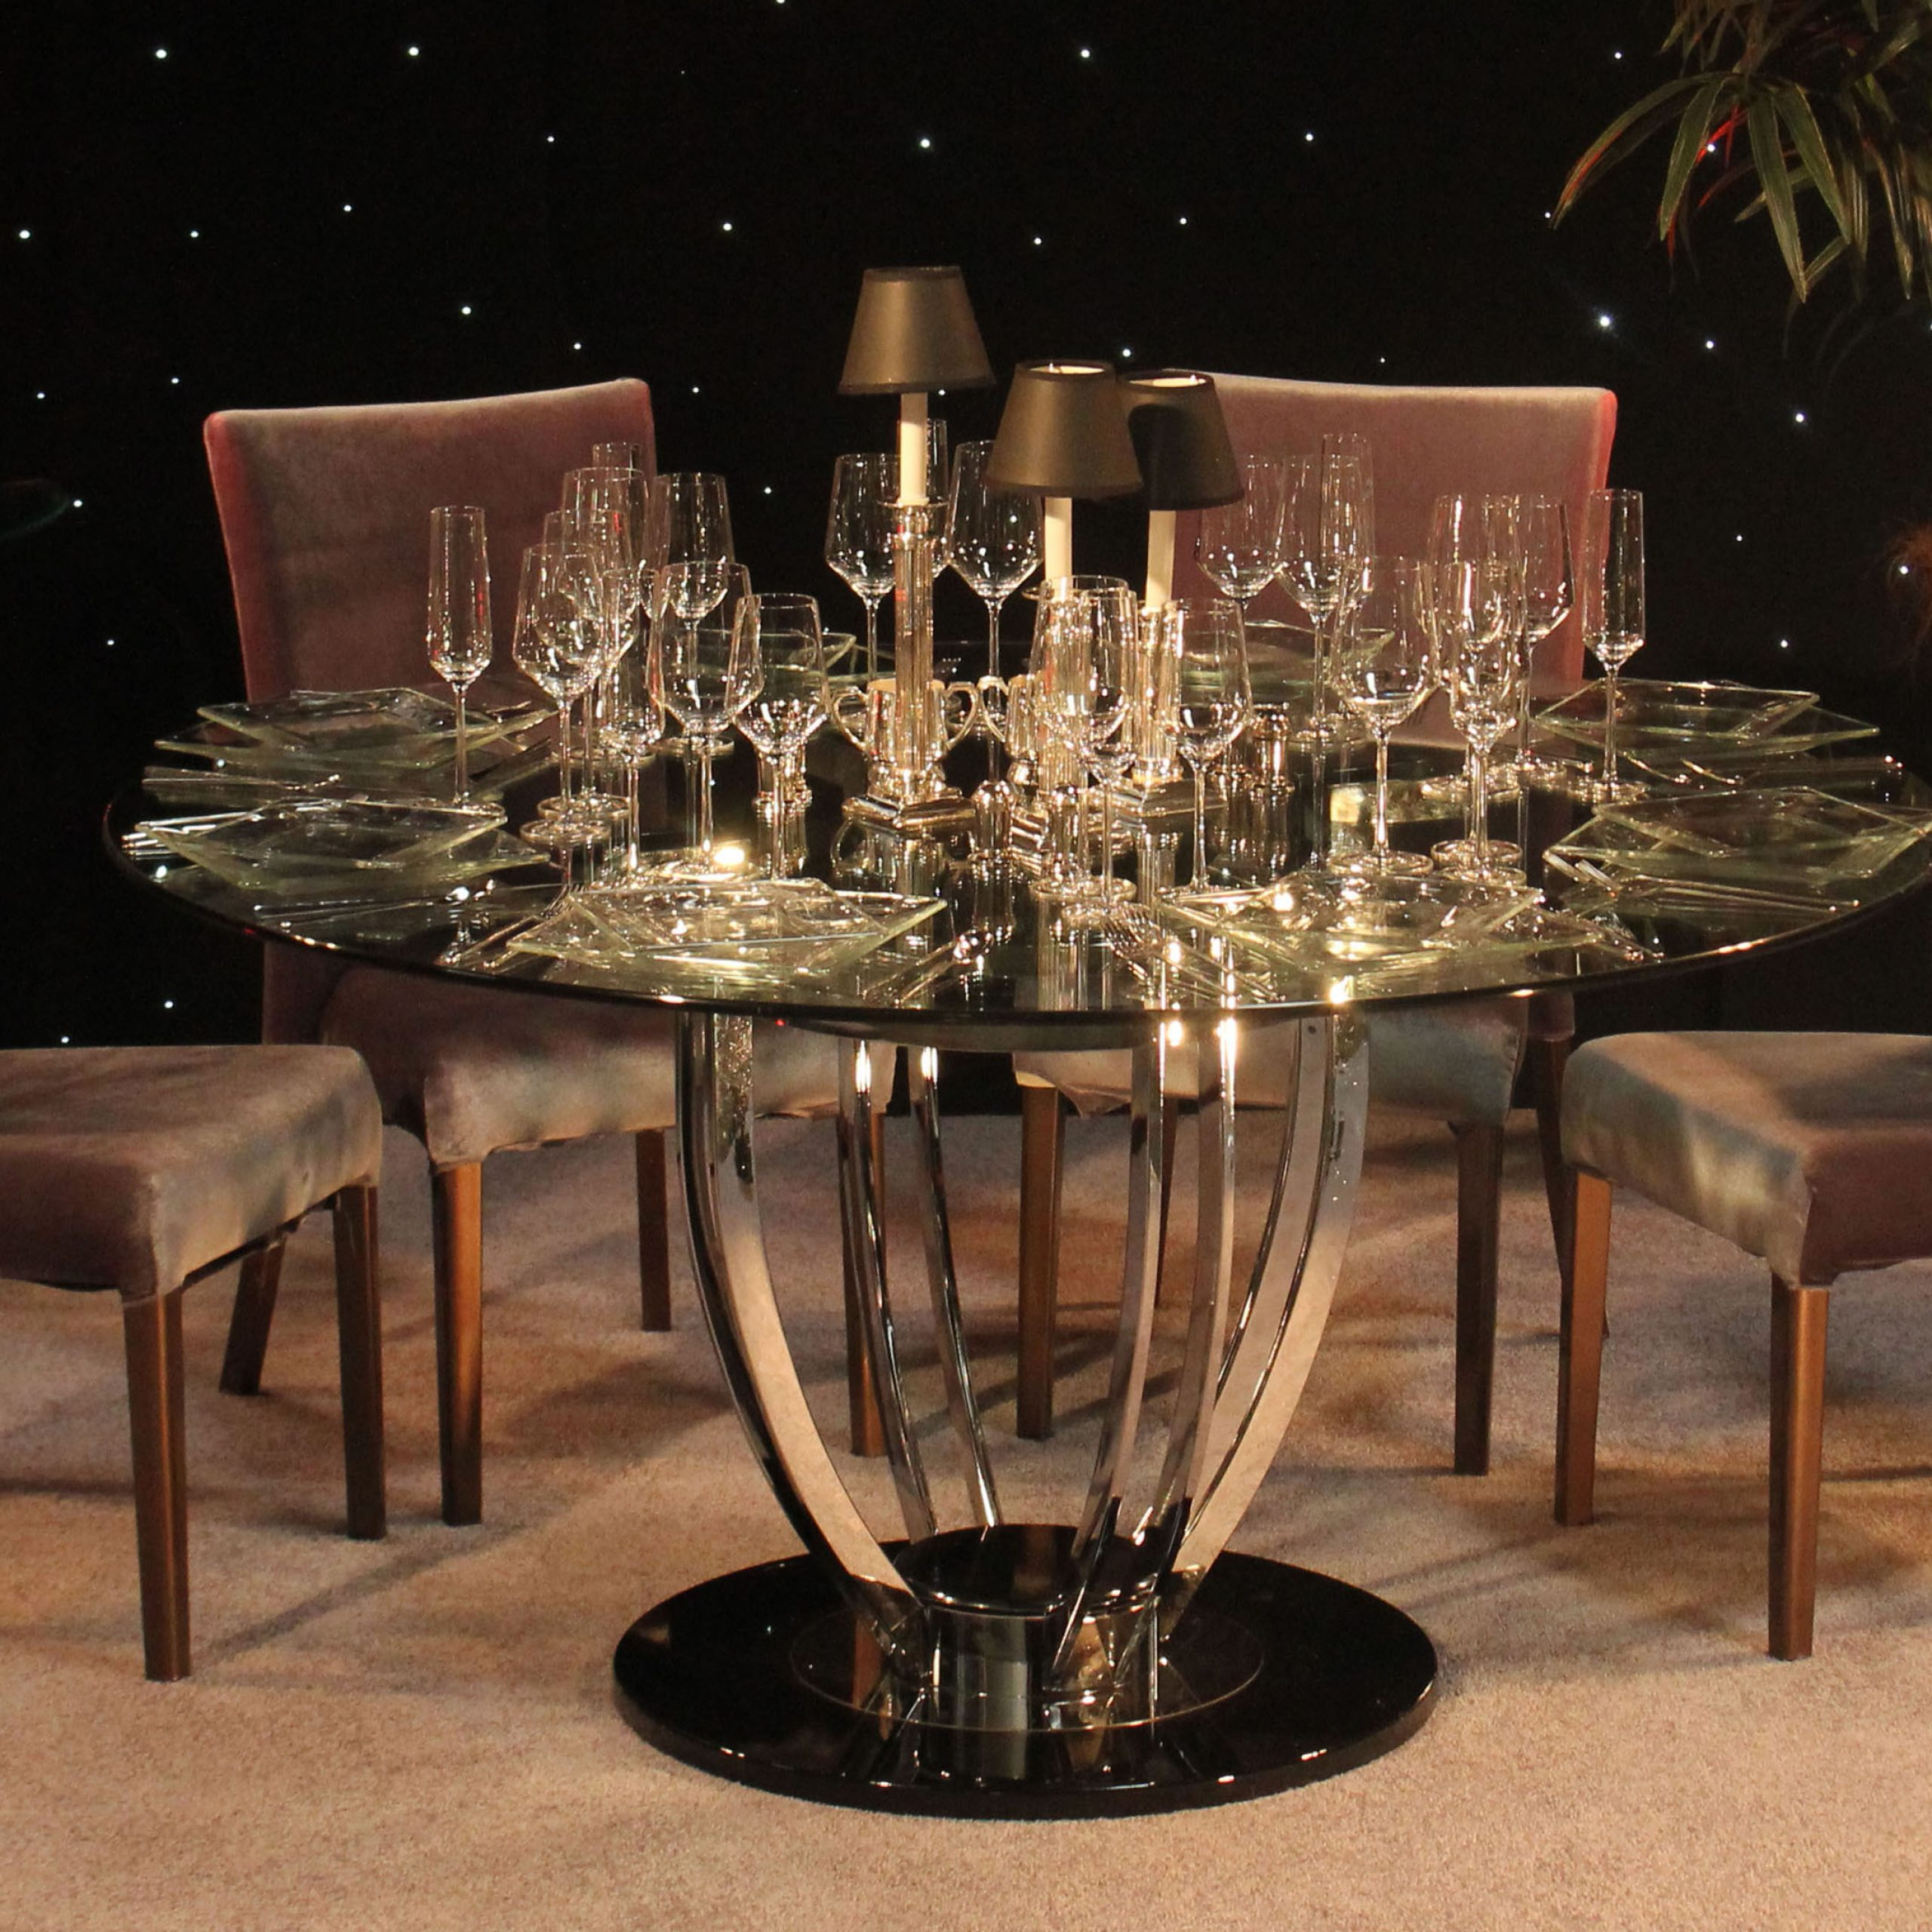 Town With Regard To Best And Newest 4 Seater Round Wooden Dining Tables With Chrome Legs (View 22 of 30)